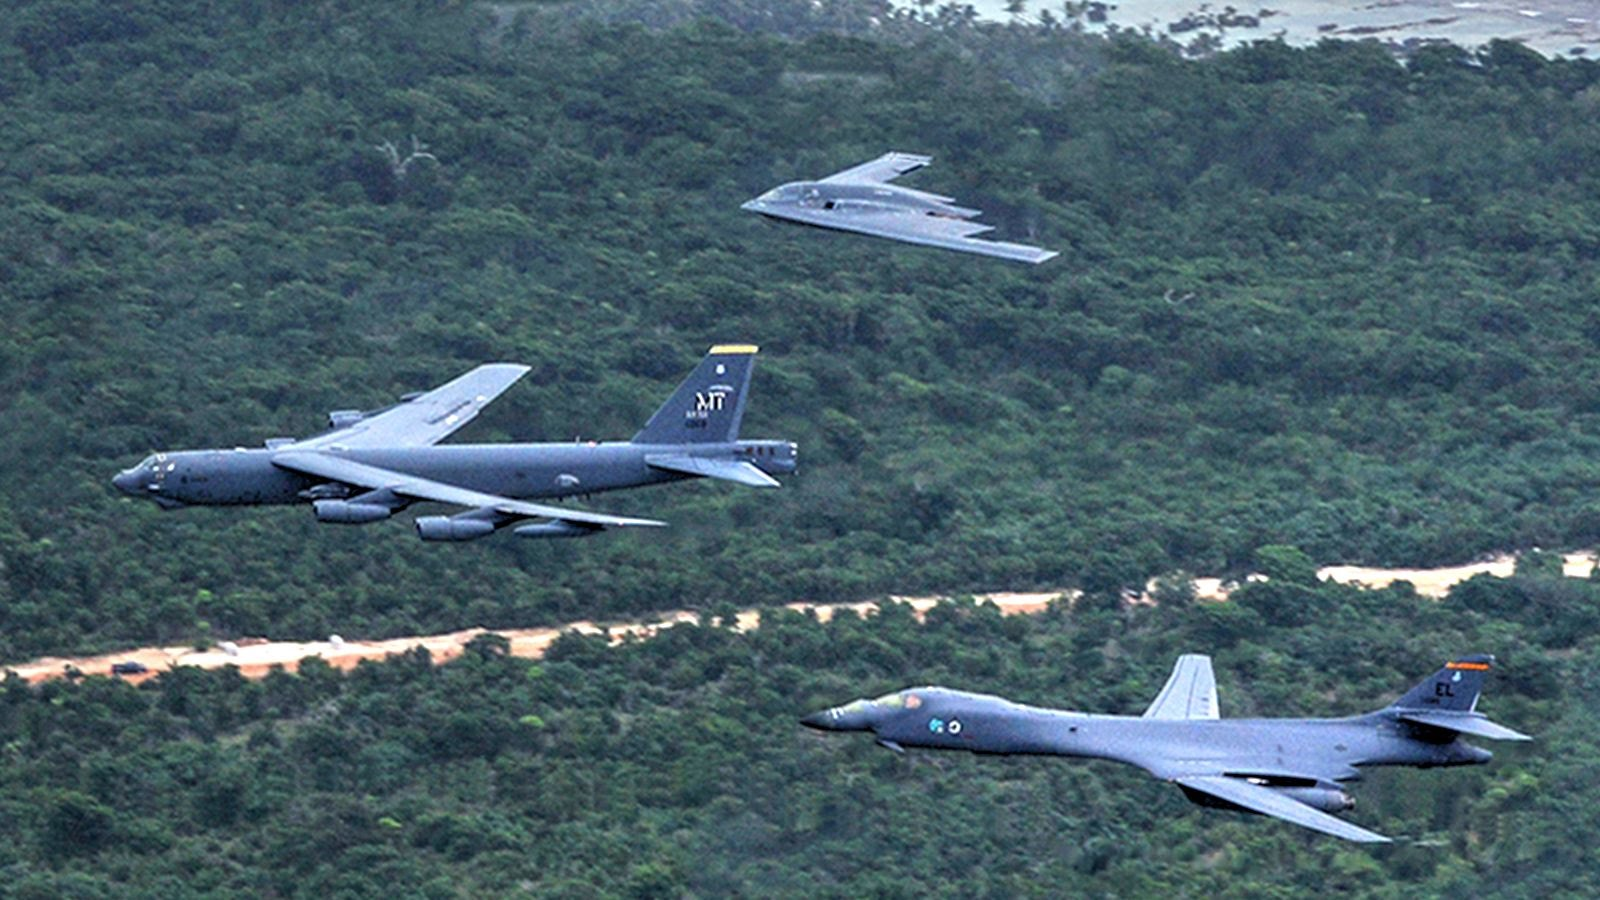 Video : B-52 Stratofortress, B-1 Lancer and B-2 Spirit  fly together in a massive show of force